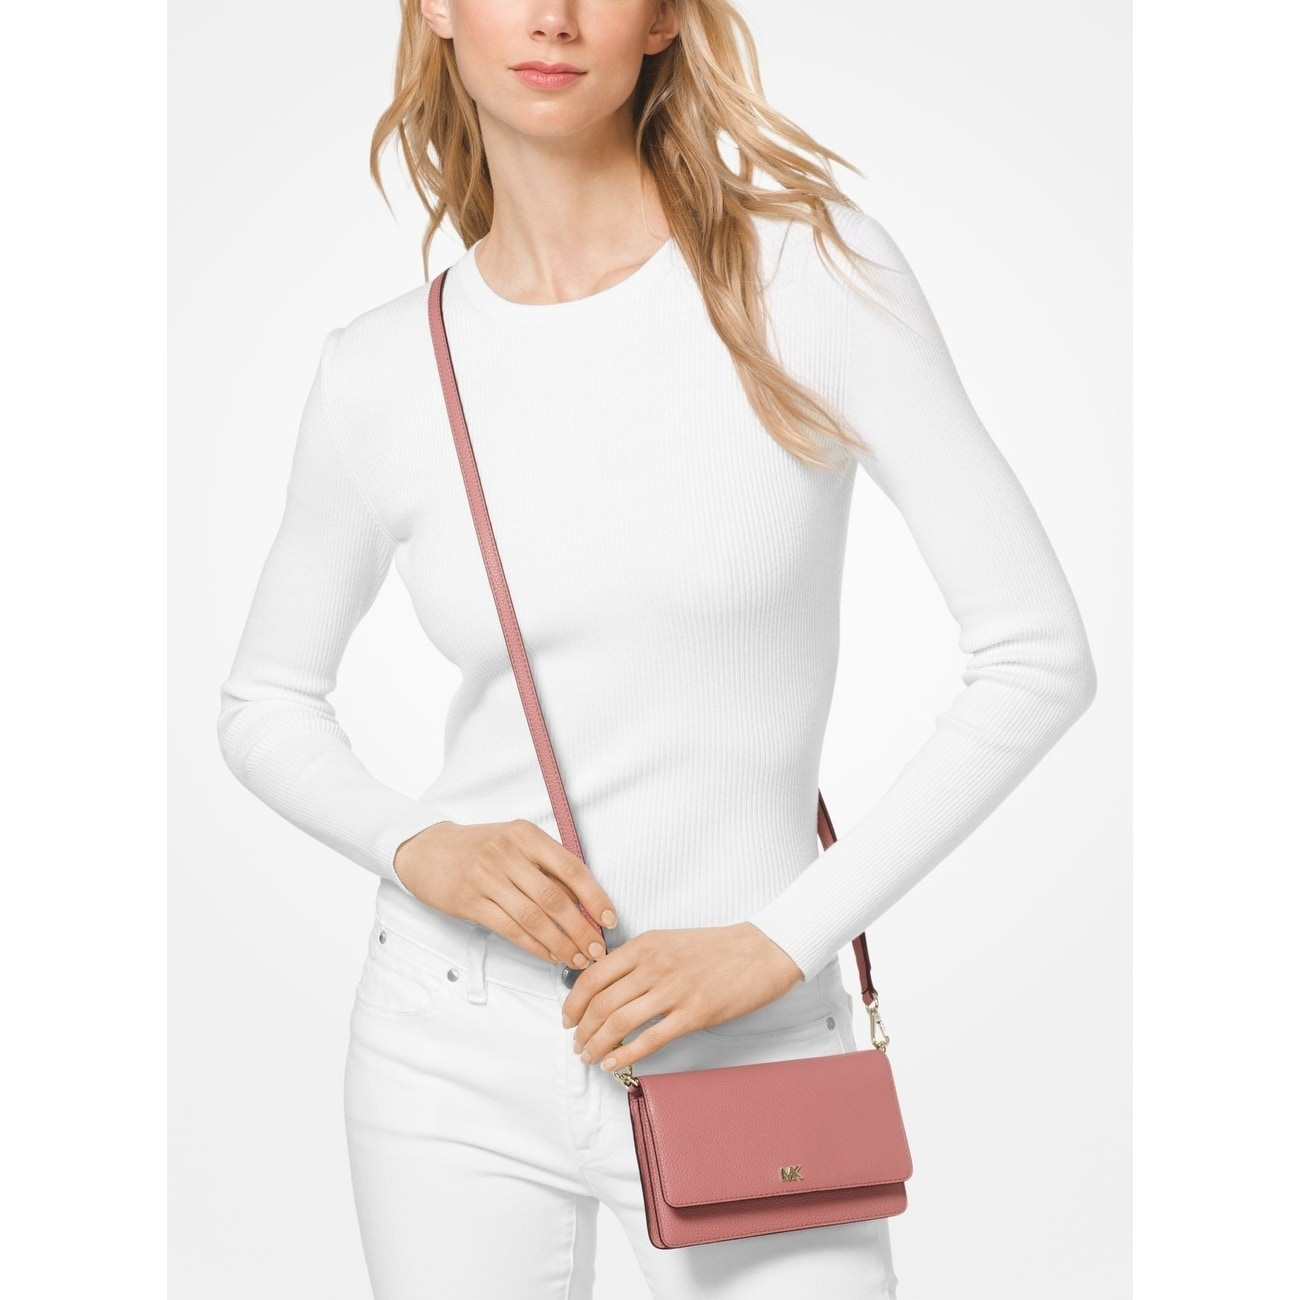 ee7a3f87dc62 Shop MICHAEL Michael Kors Pebbled Leather Convertible Crossbody - Free  Shipping Today - Overstock - 25681583